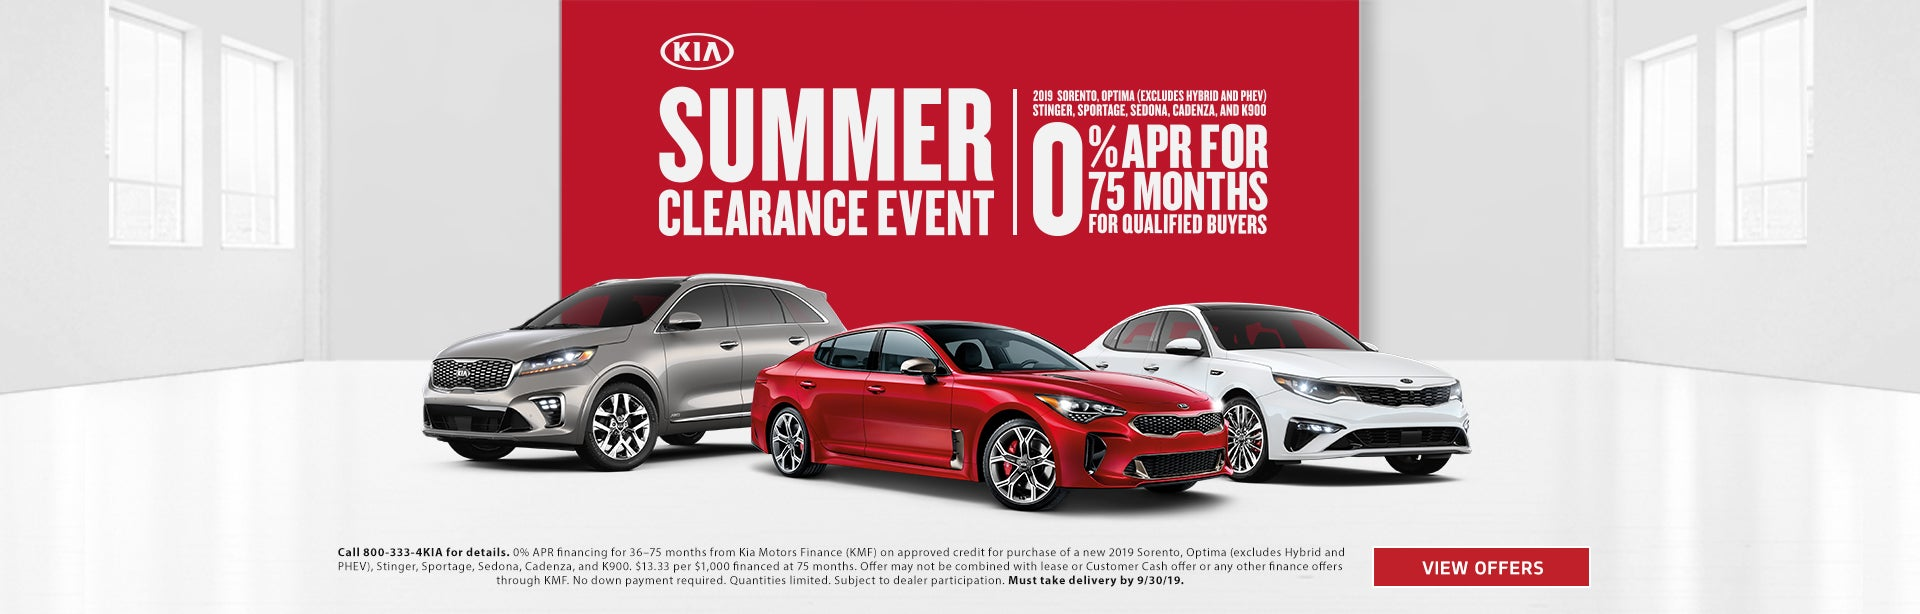 Kia Dealer in Sarasota, FL | Used Cars Sarasota | Sunset Kia